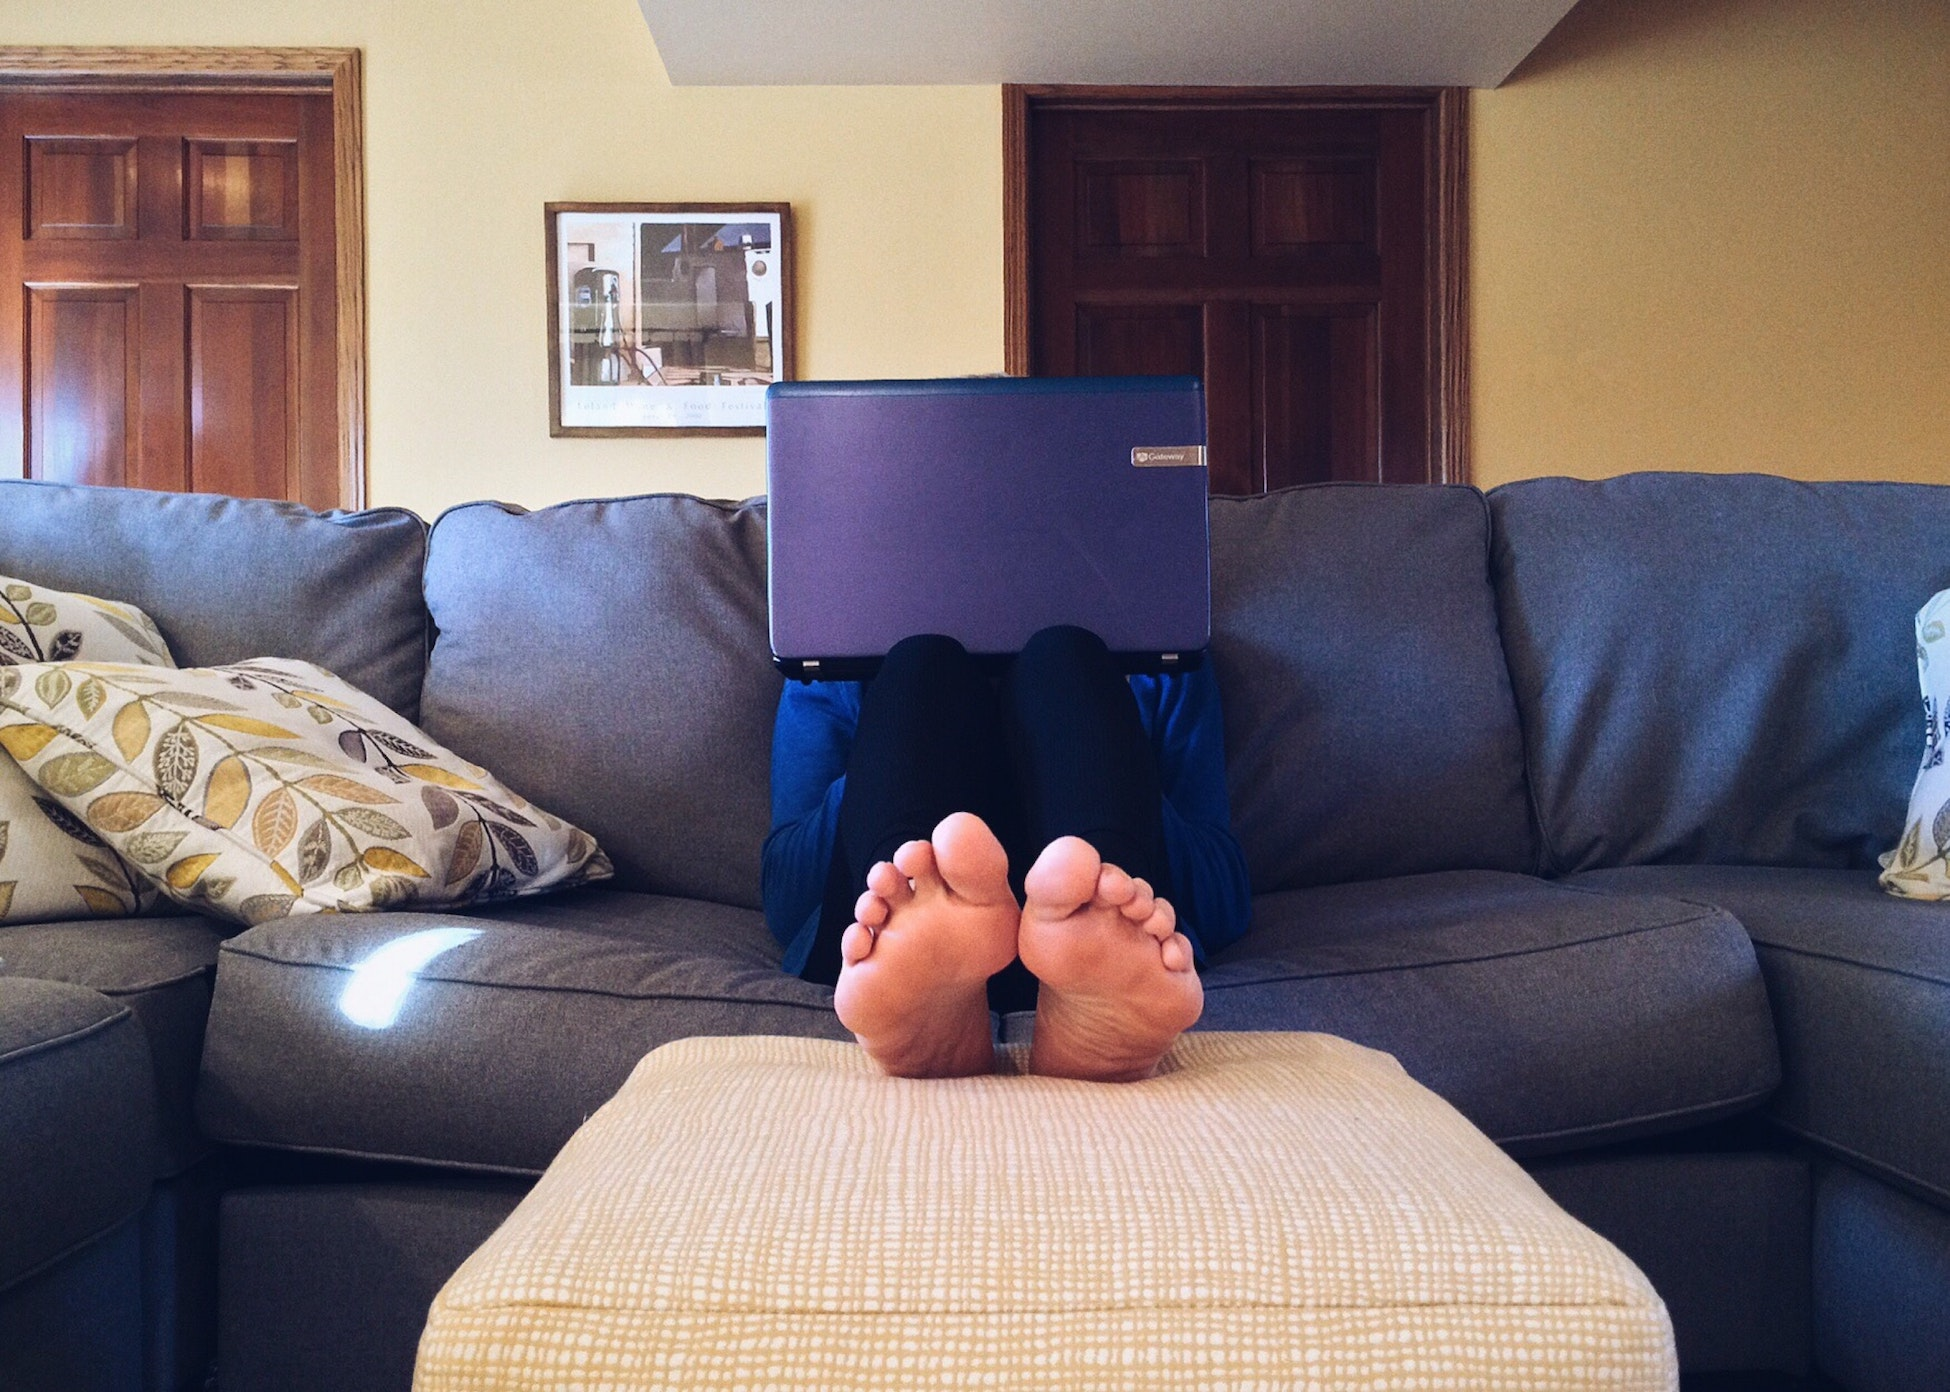 working from couch - allow employees to work from home